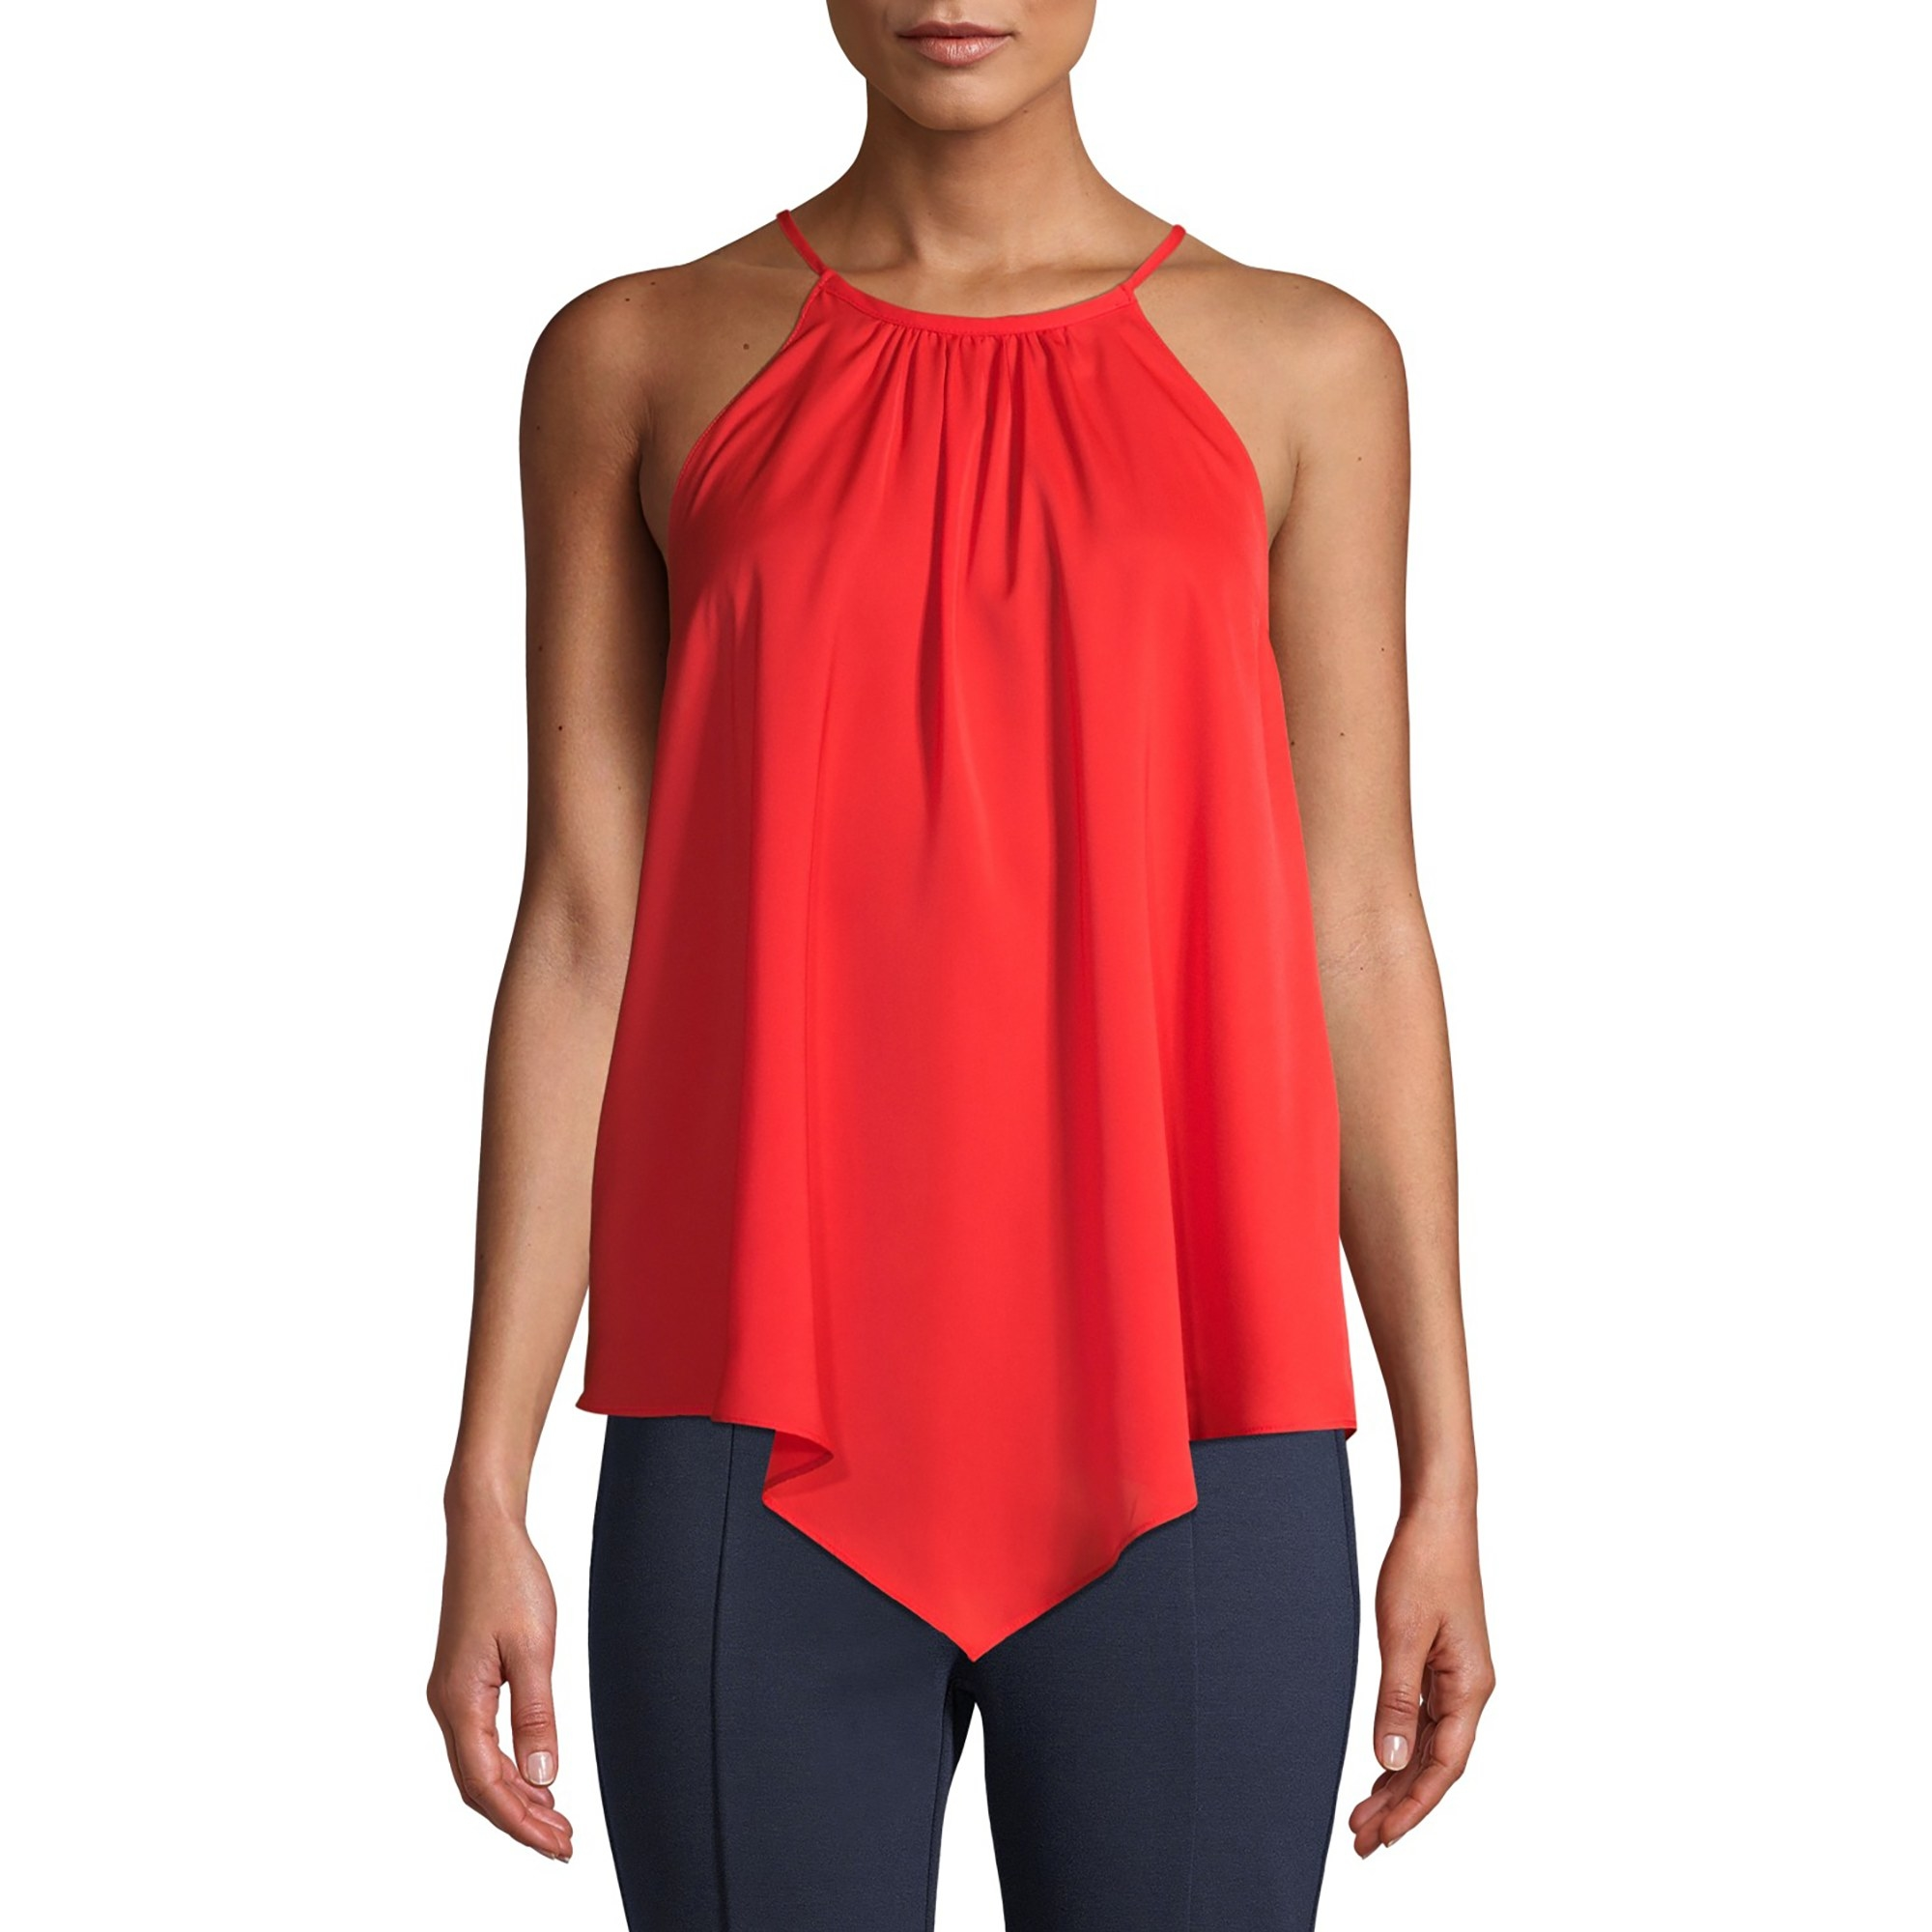 The red halter top with V-shaped hem